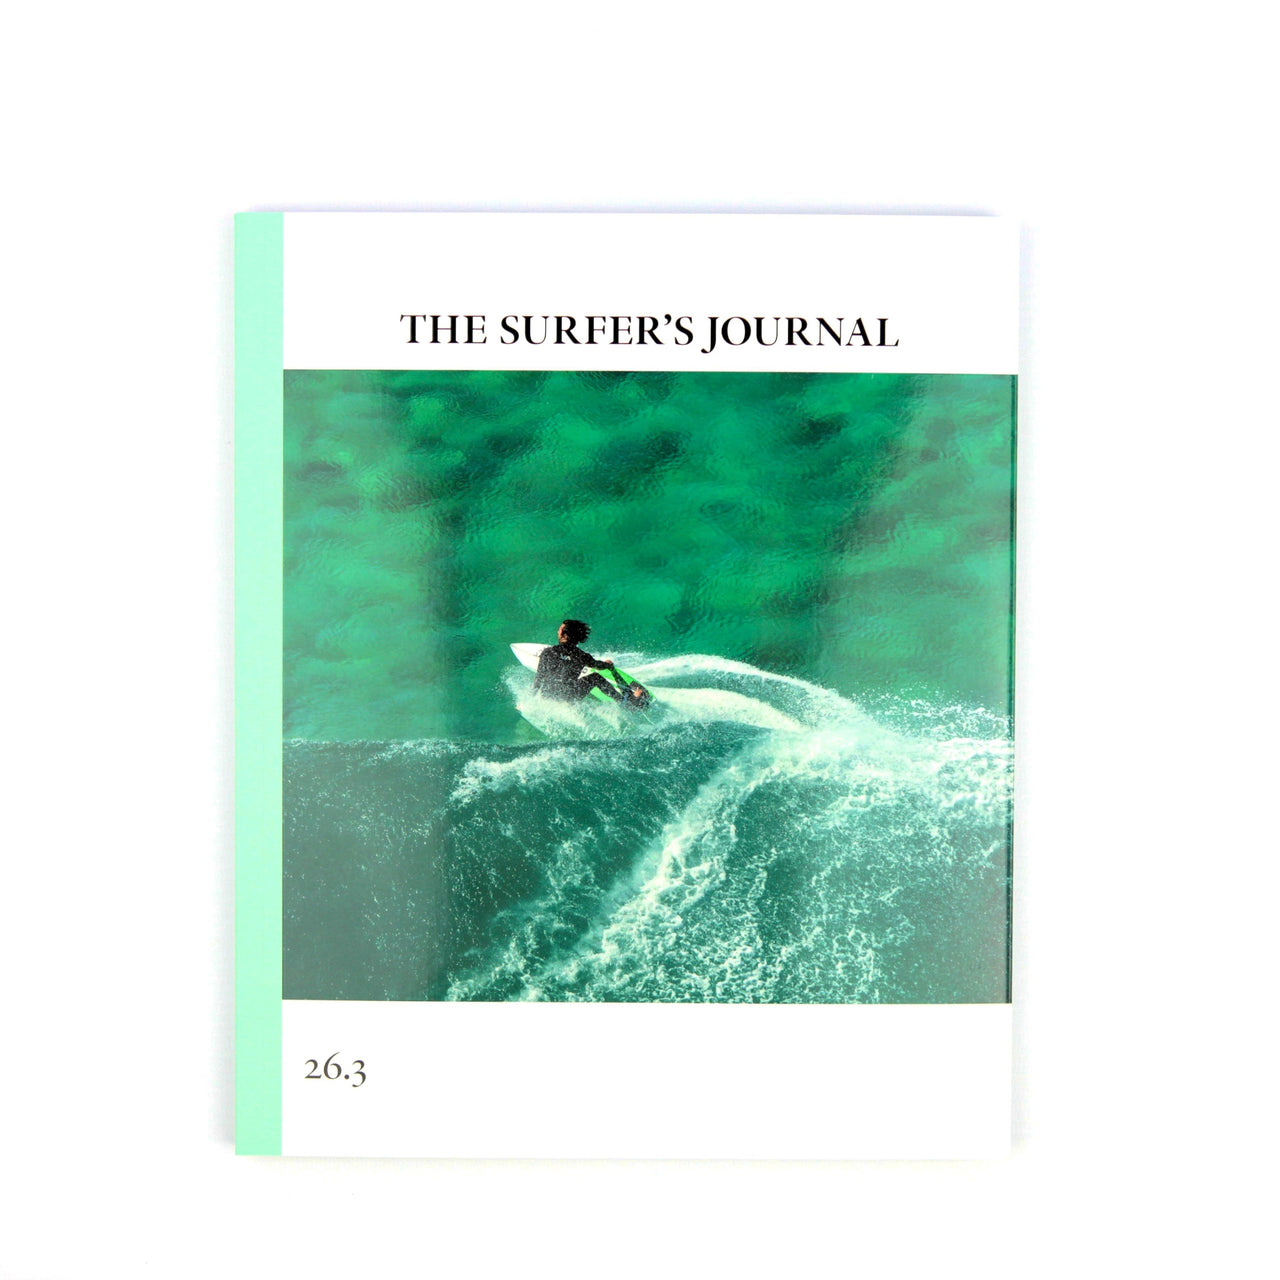 The Surfer's Journal 26.3 - Just the Sea by SEA LOVERS